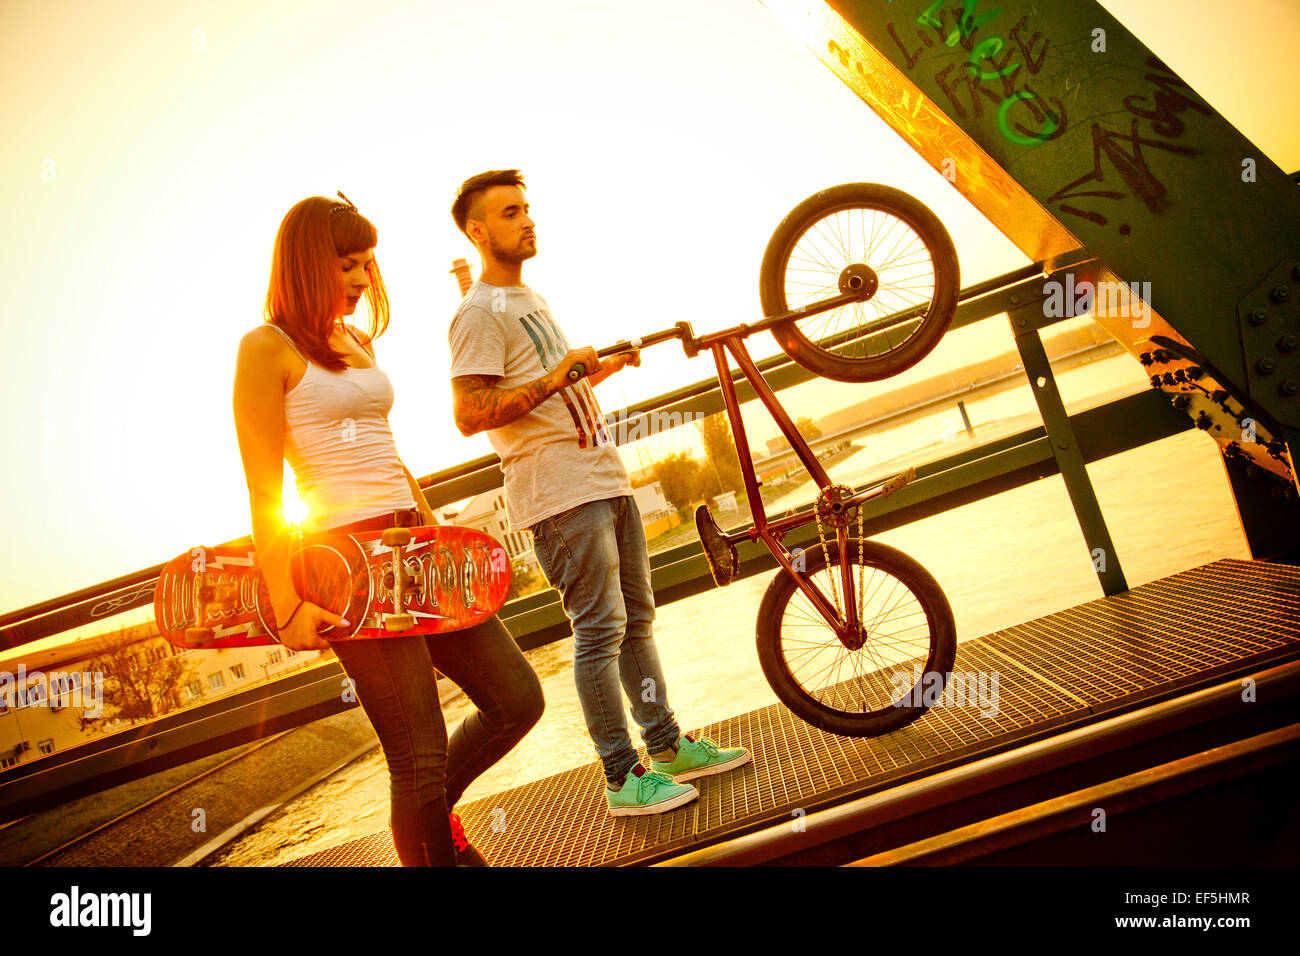 Young couple with skateboard and BMX bicycle outdoors - Stock Image